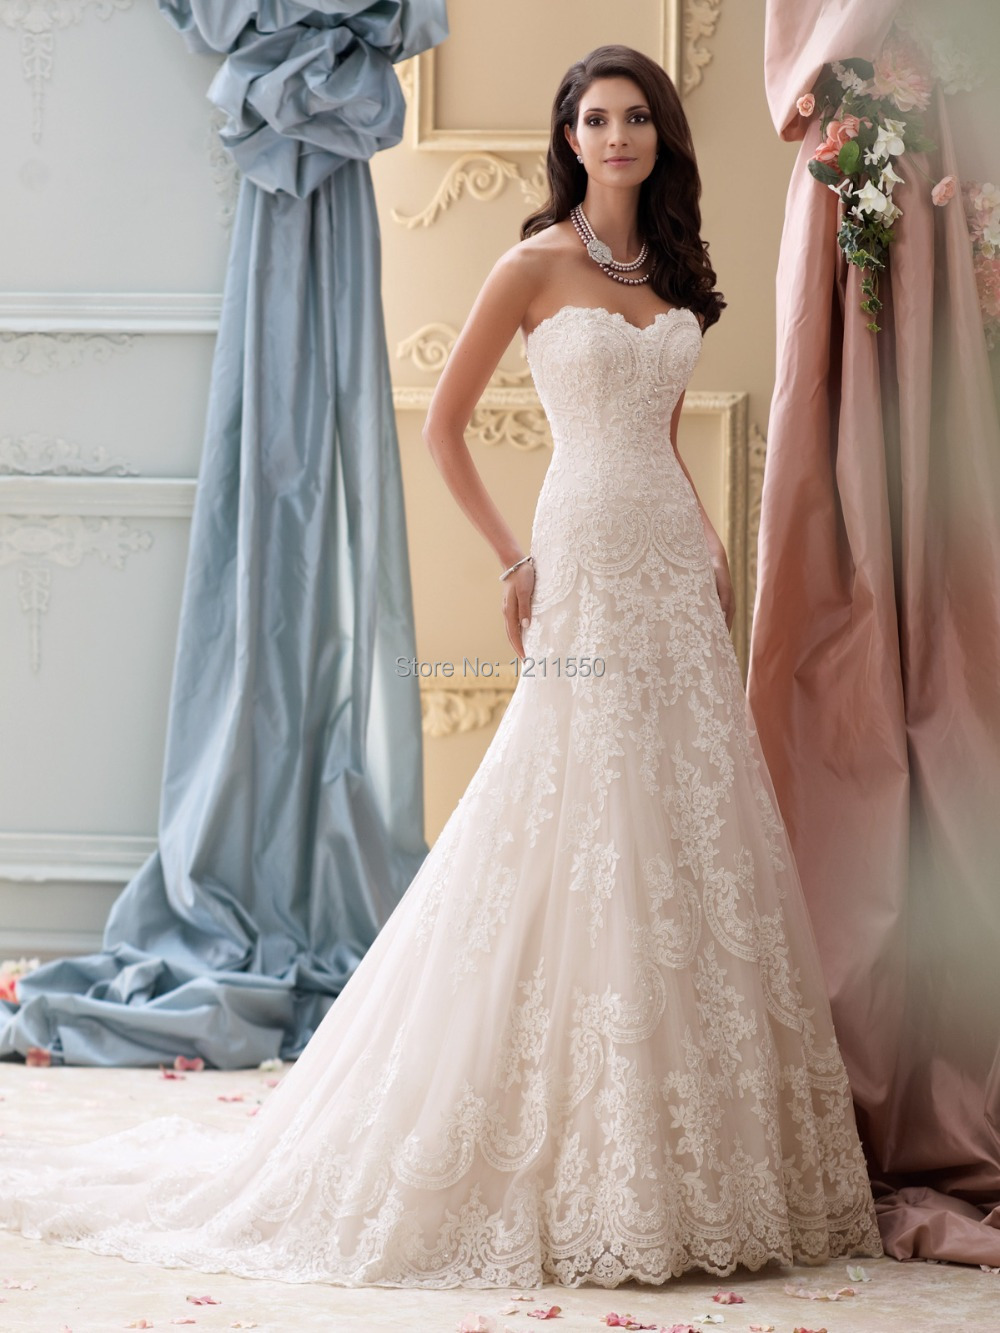 images of design wedding dress the fashions paradise